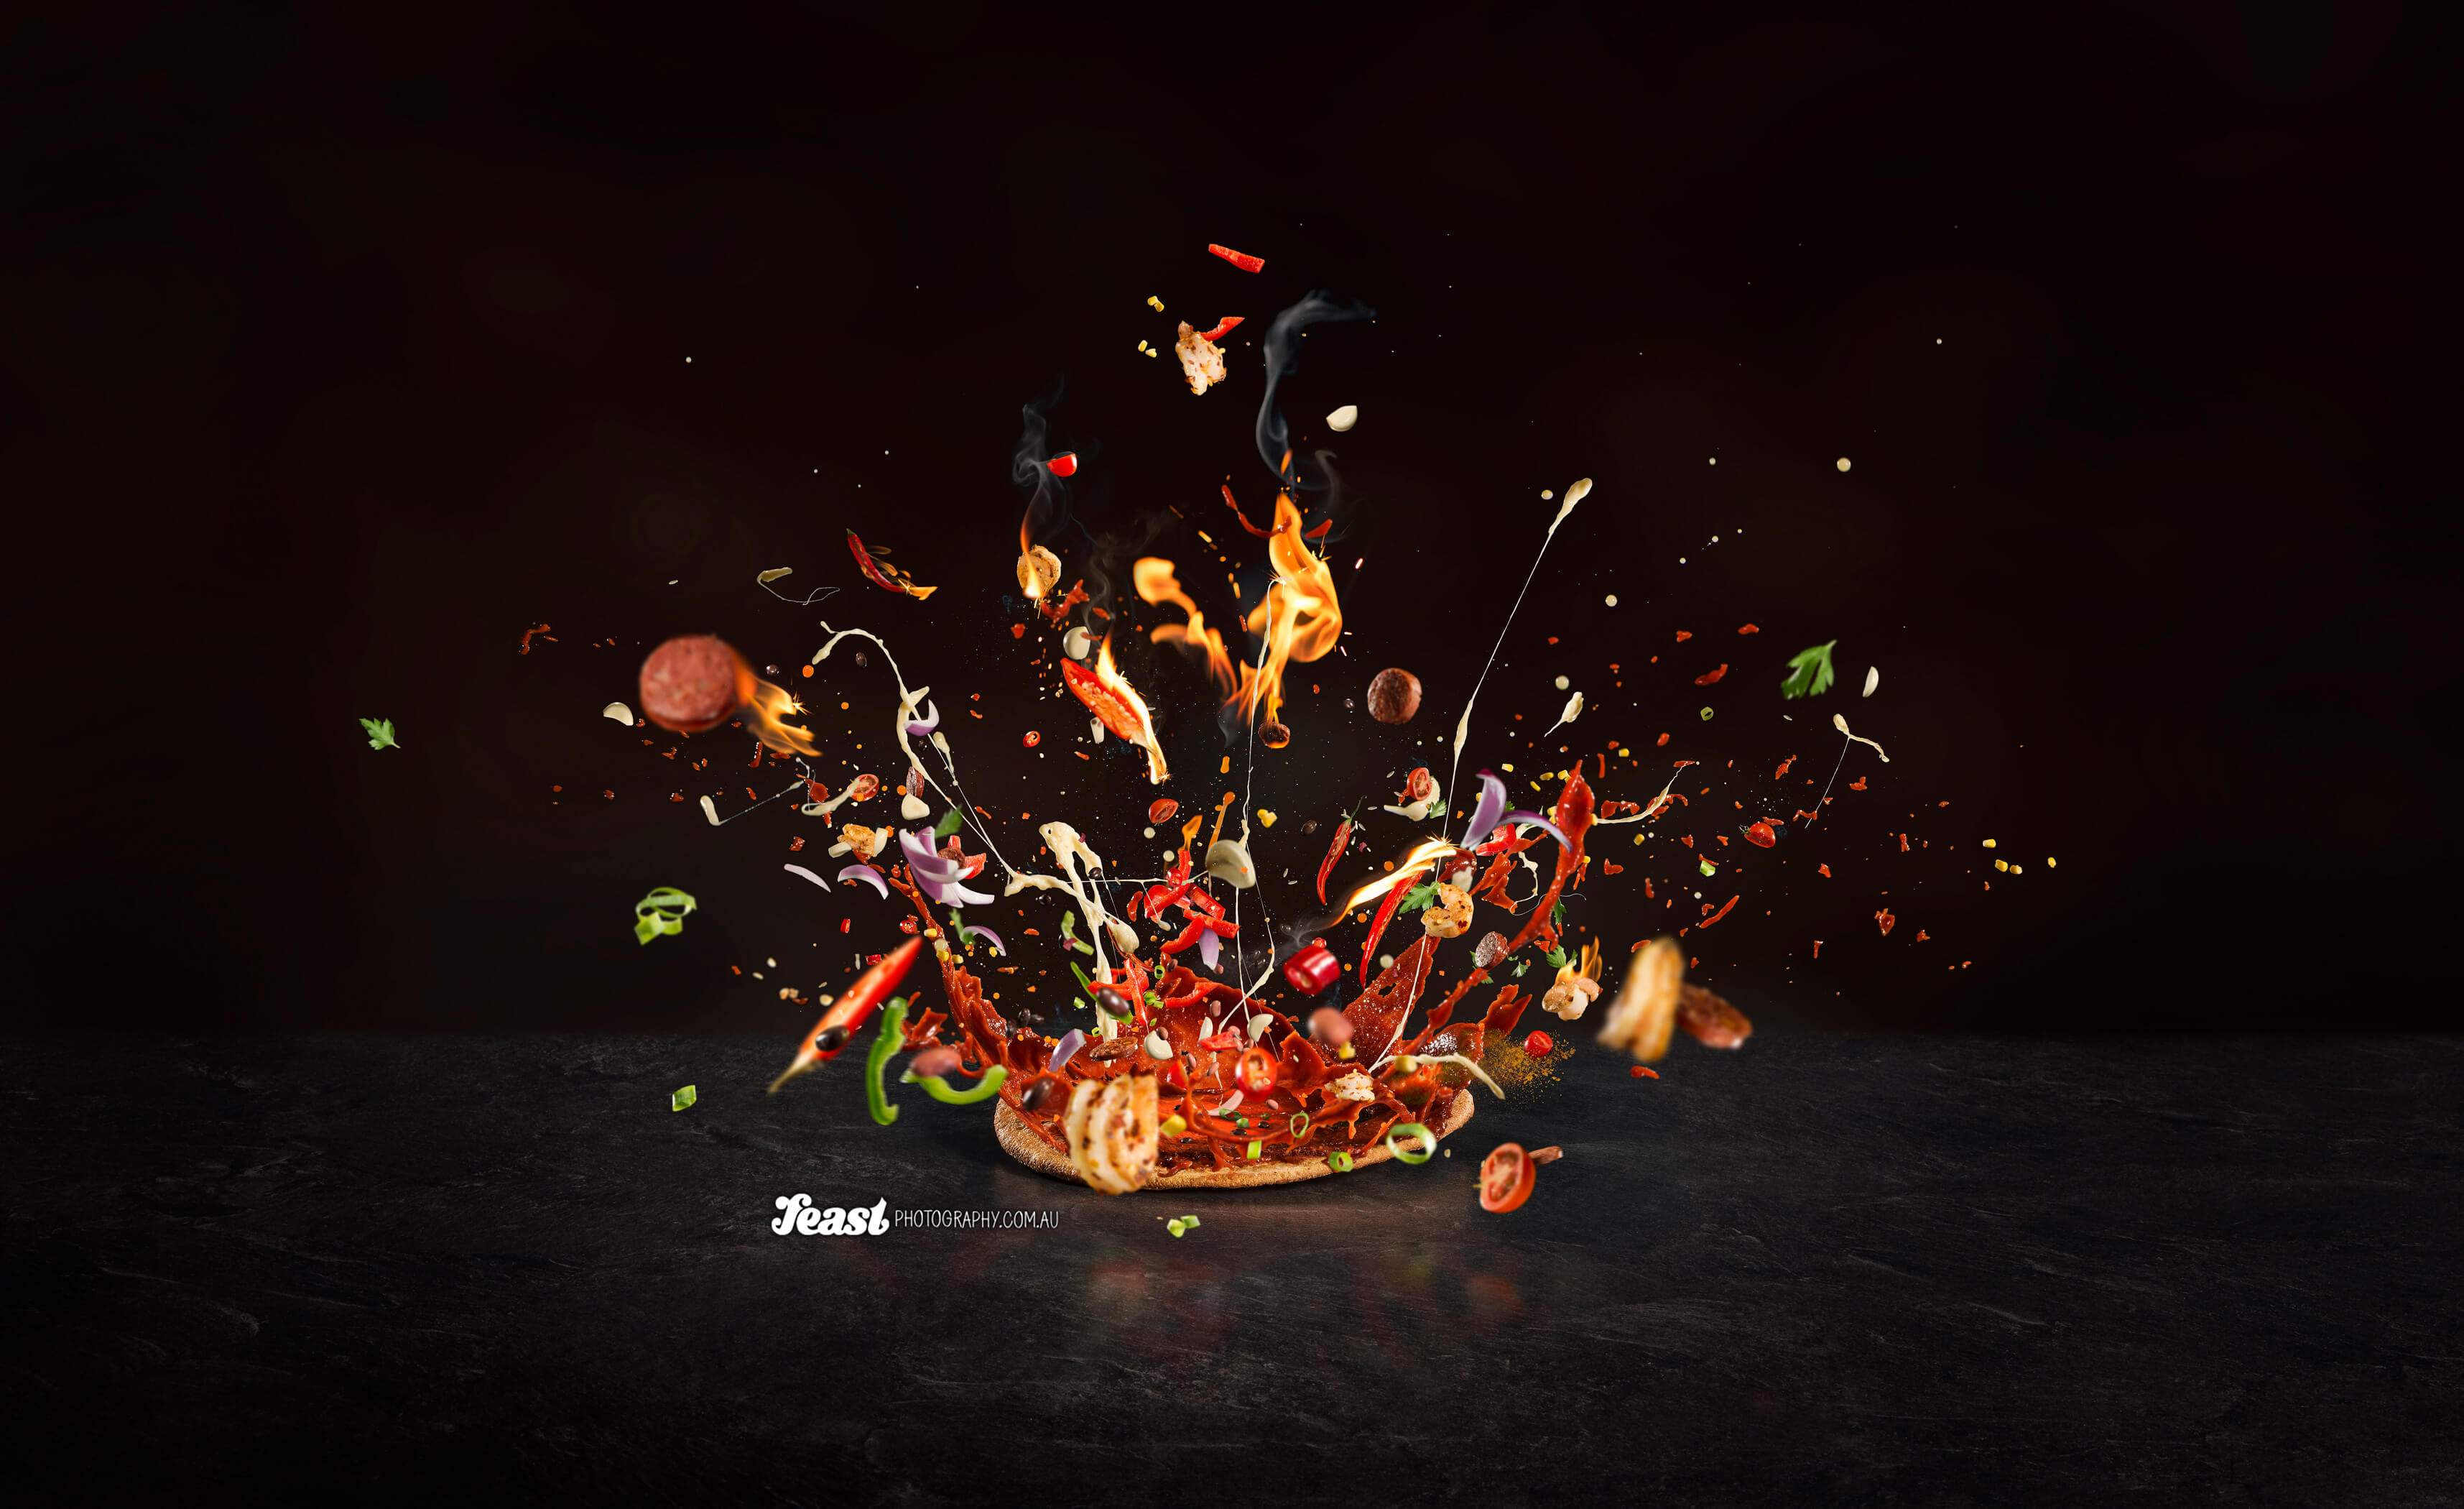 Inferno pizza by Feast Photography